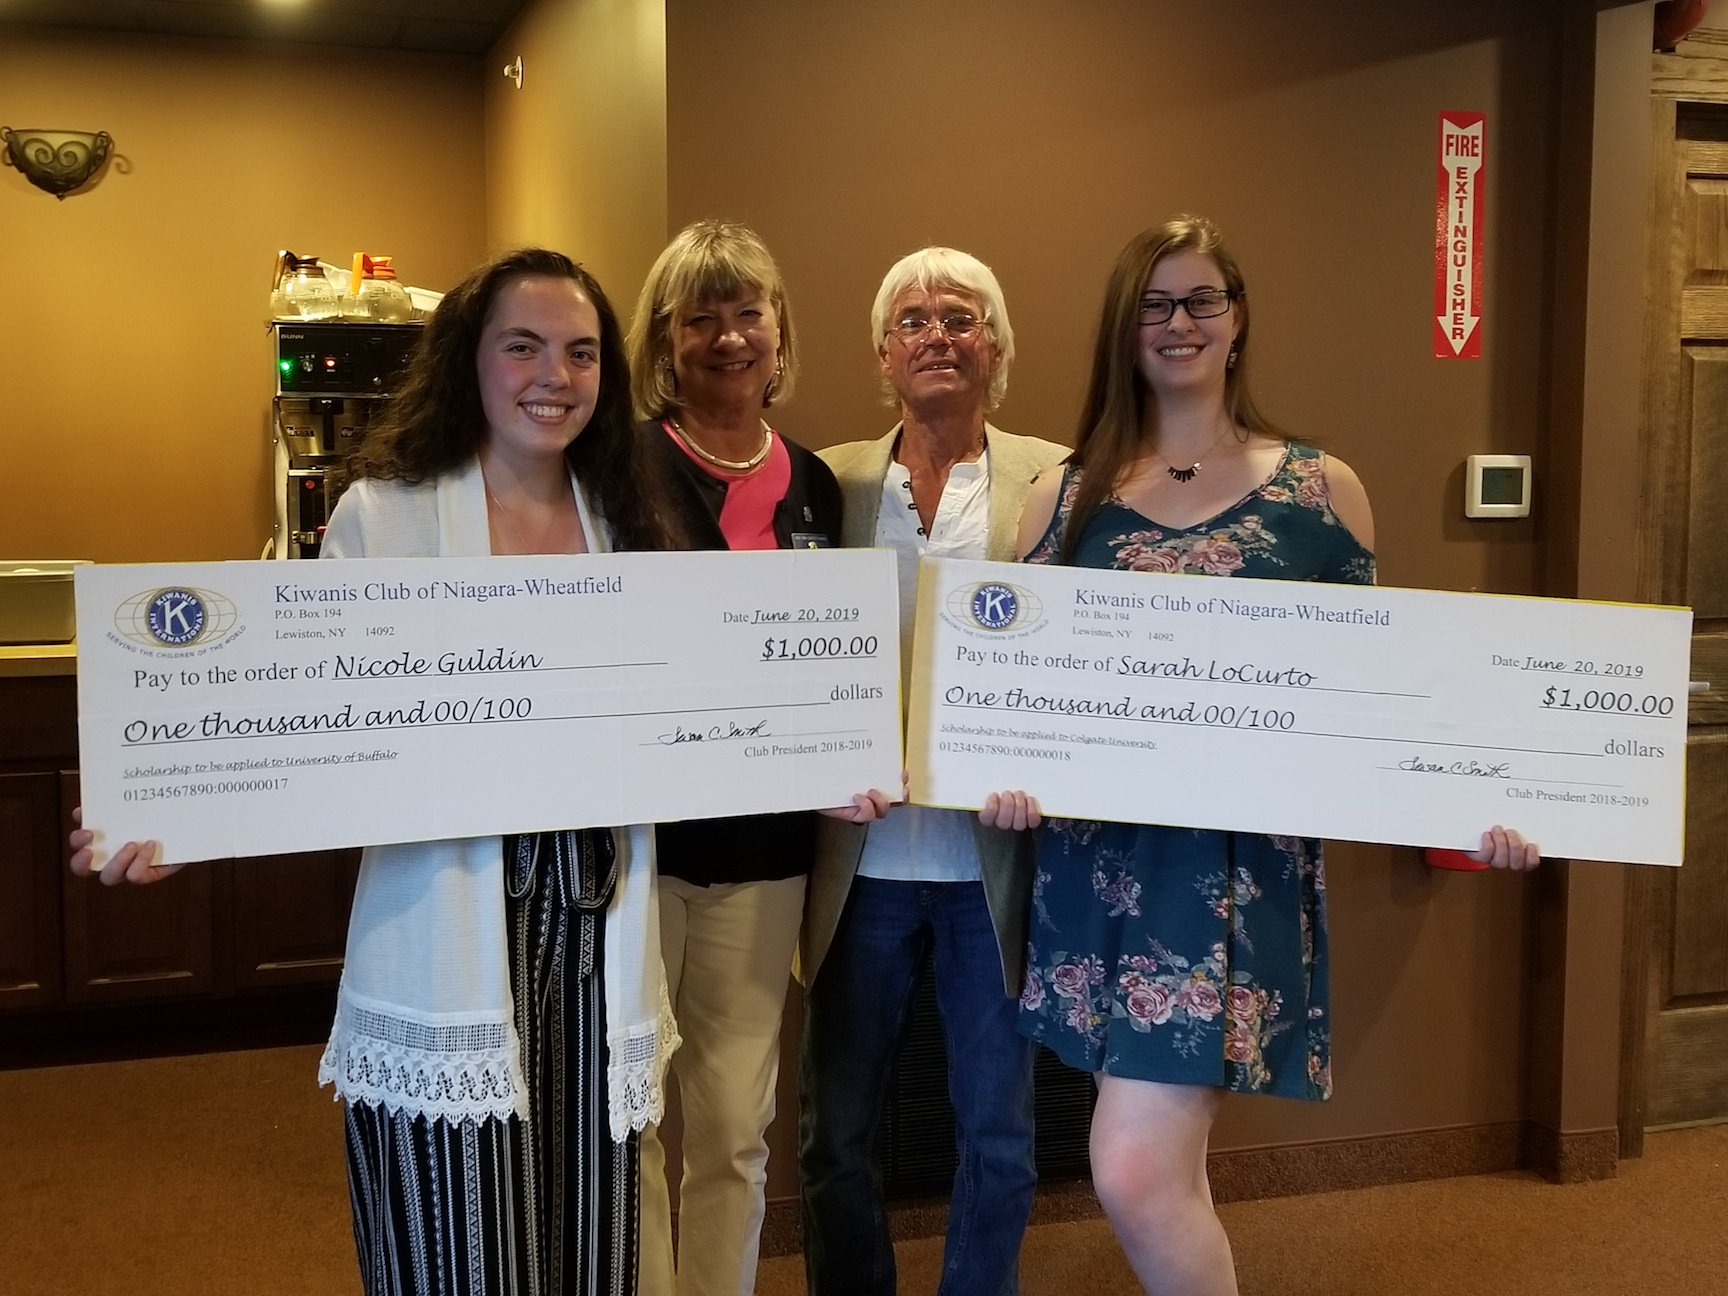 From left, Nicole Guldin, Kiwanis Club of Niagara-Wheatfield President Susan Smith, Immediate Past President Danny Maerten and Sarah LoCurto. (Photo submitted by Danny Maerten)